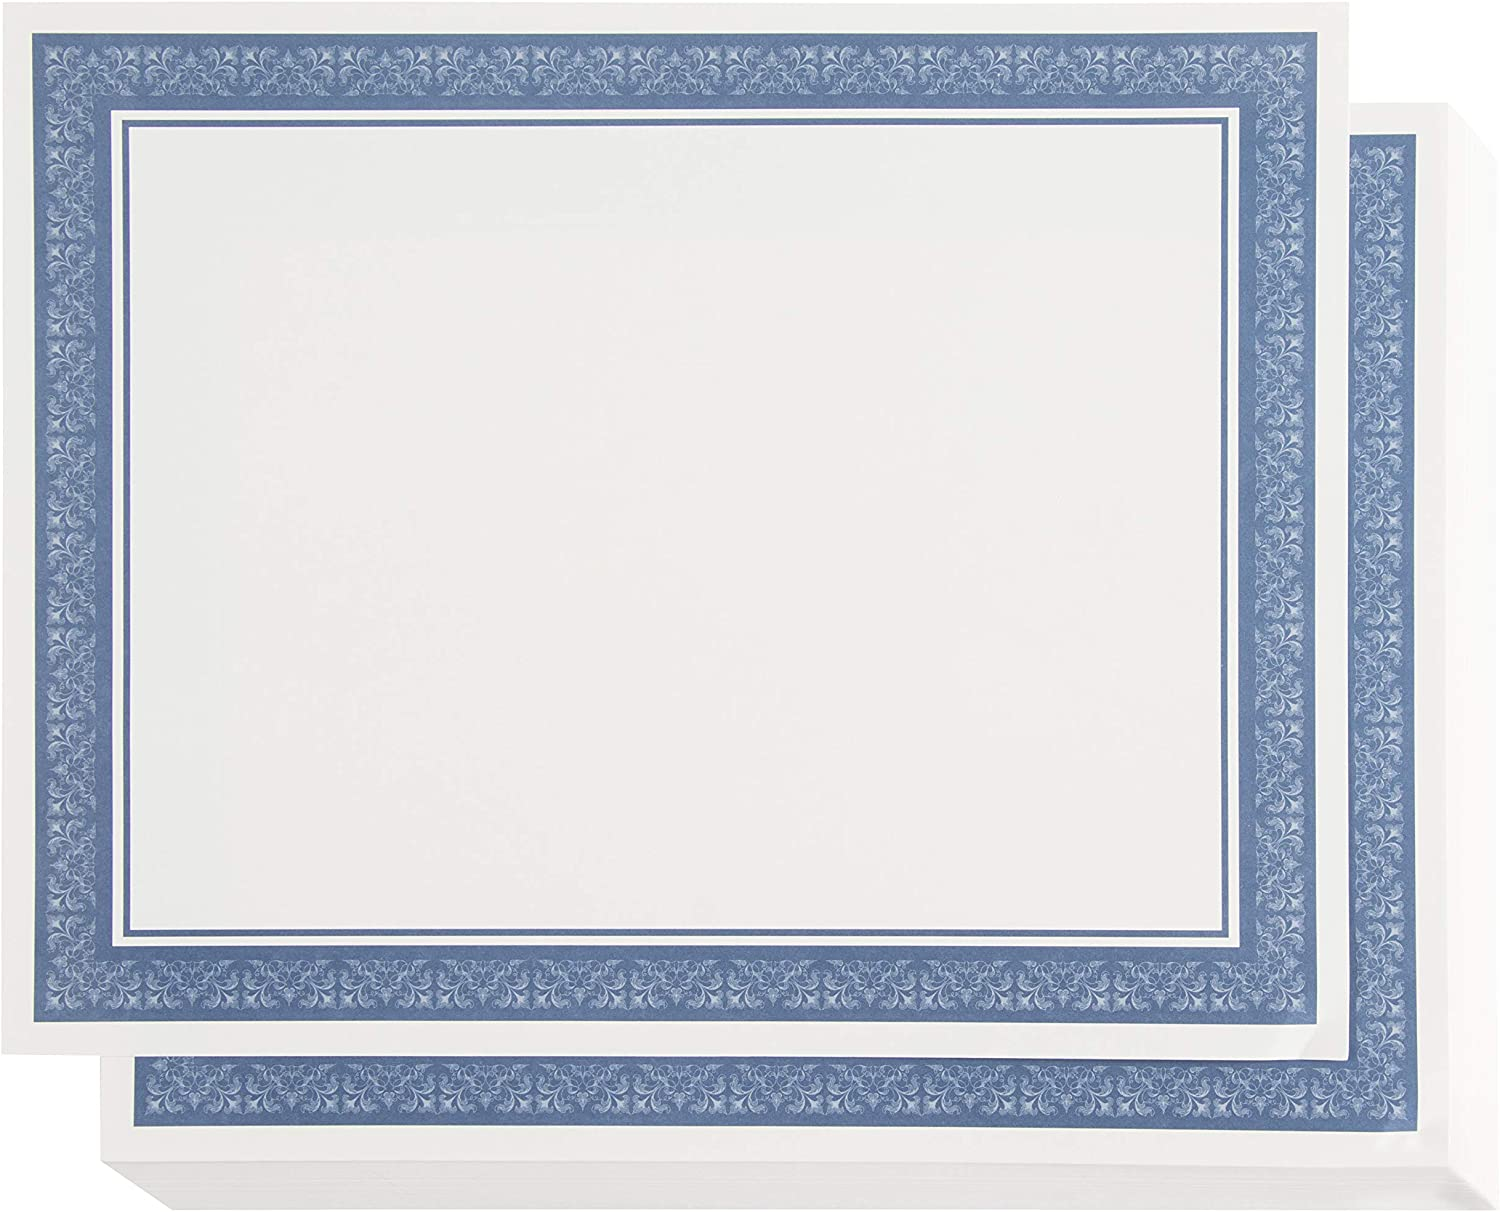 Certificate Paper with Blue Border, Award Certificates (White, 8.5 x 11 in, 50-Pack)